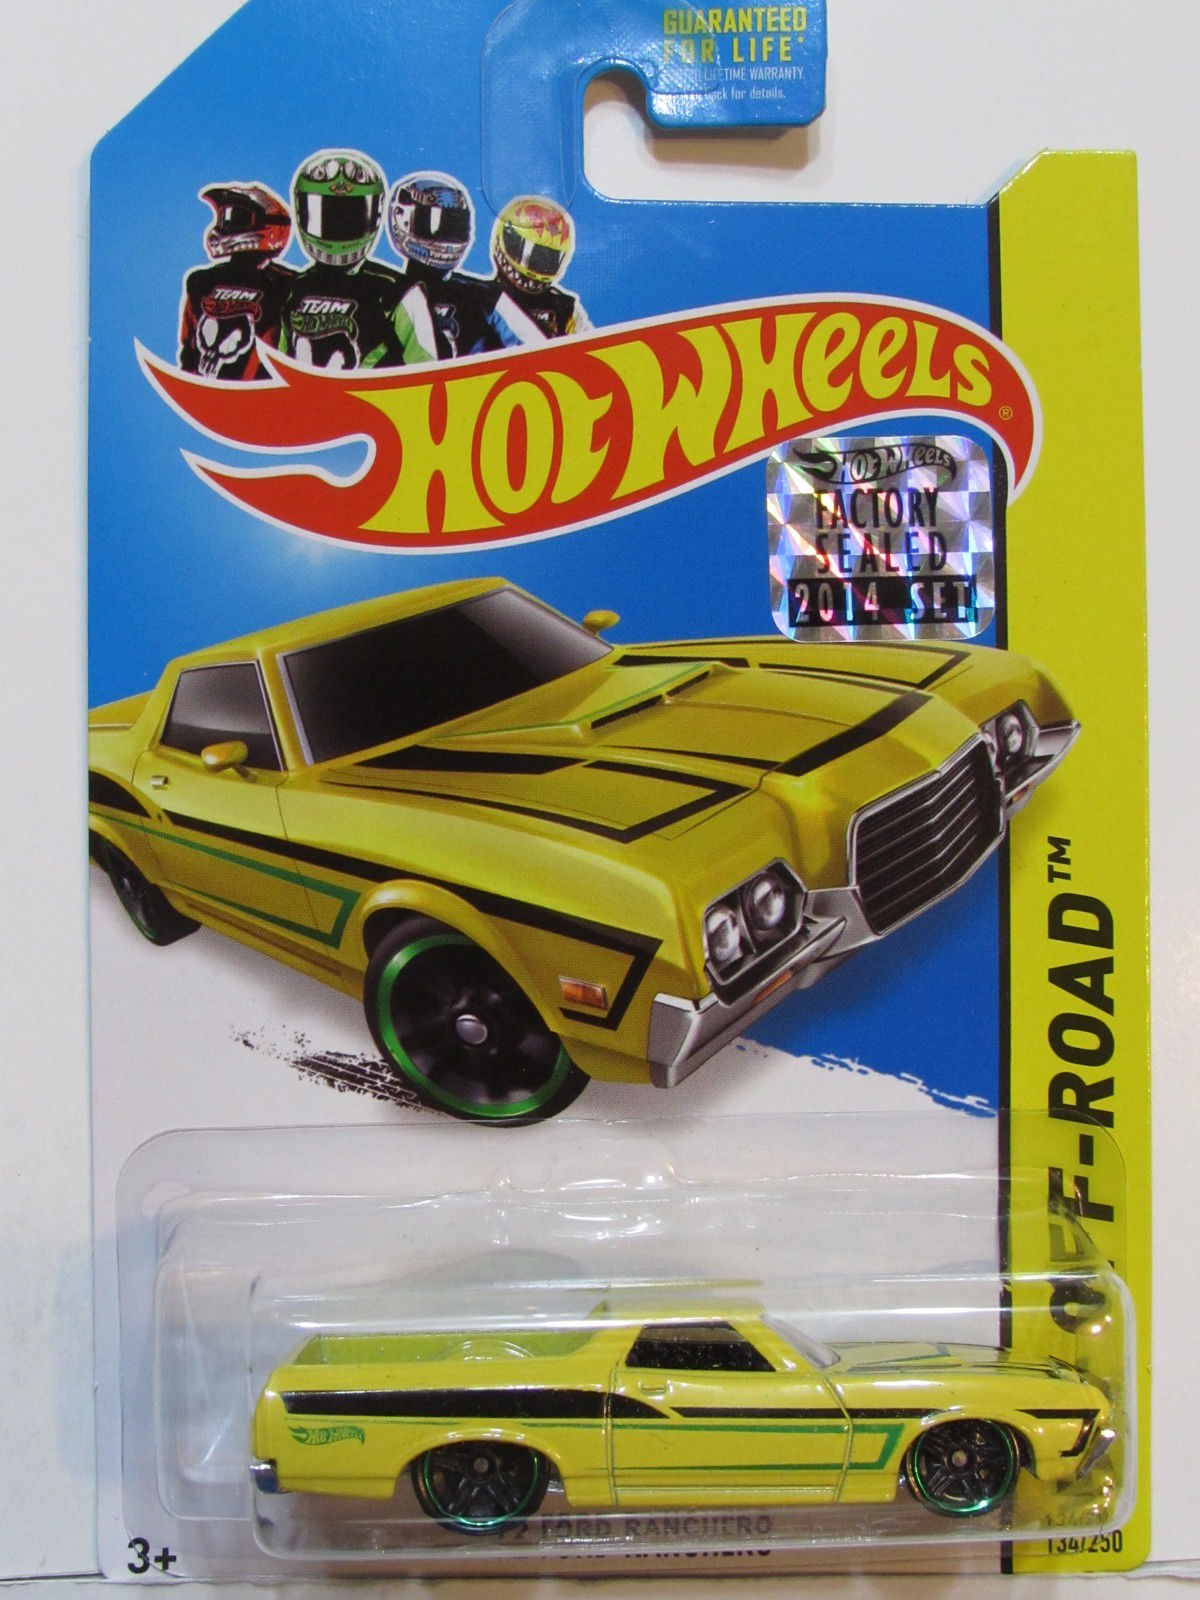 HOT WHEELS 2014 HW RACE '72 FORD RANCHERO FACTORY SEALED YELLOW